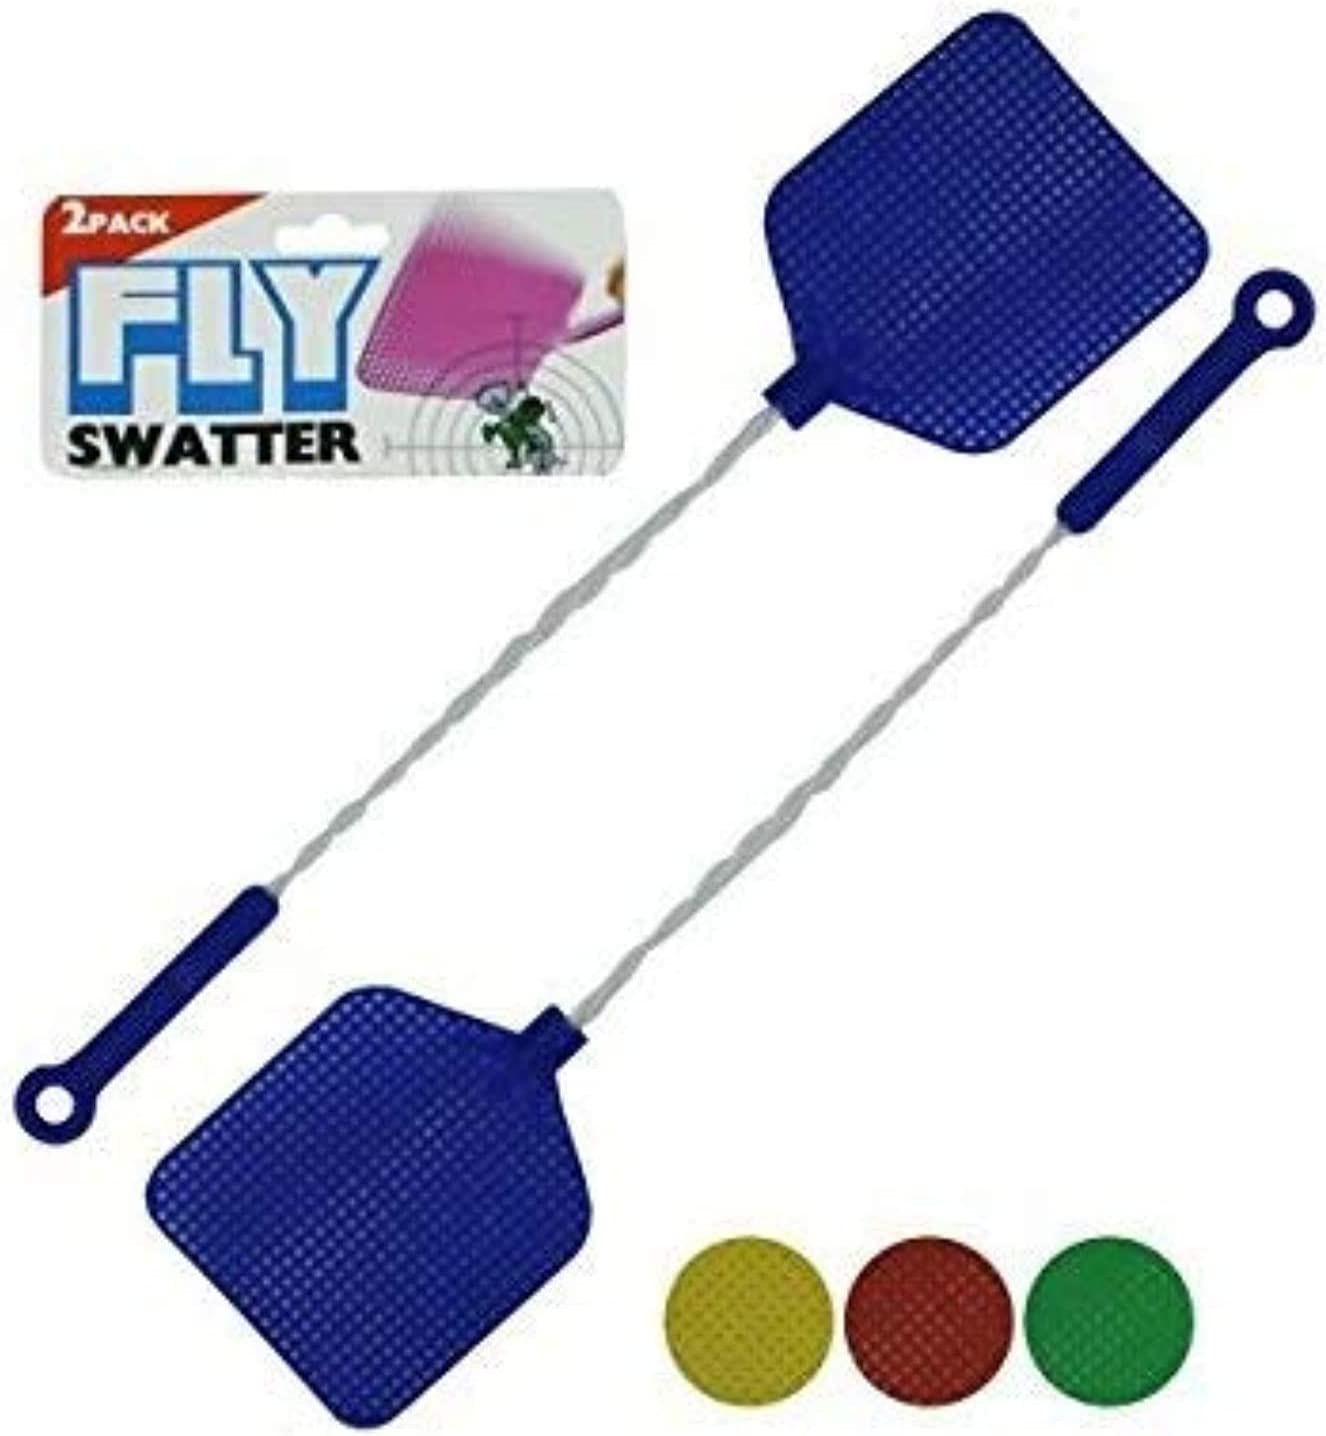 Fly Swatter with Wire Handles 9 x 5 x 1 Inches 2 Pack